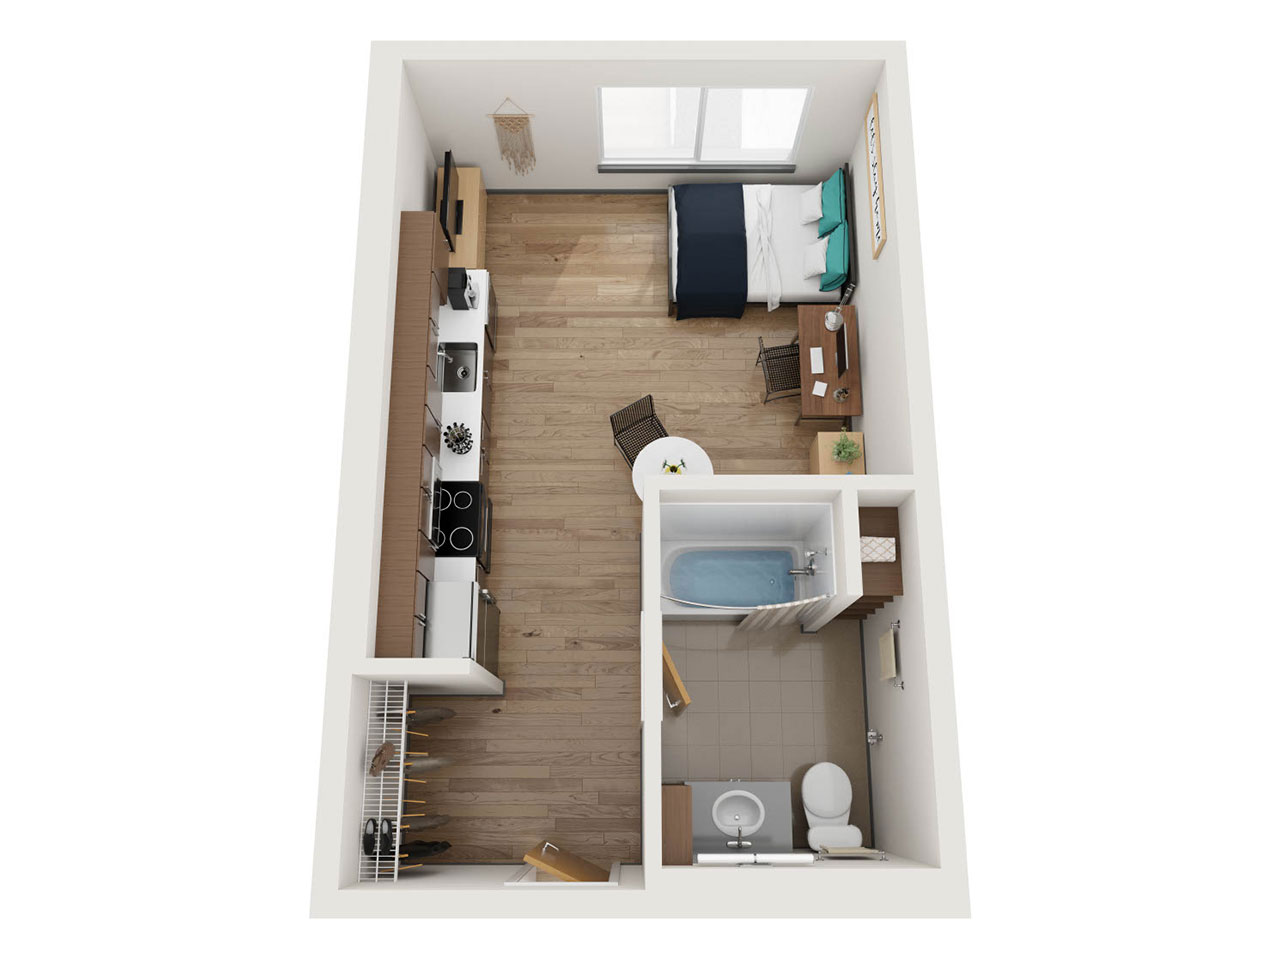 Birds-Eye View of a Floor Plan for a Studio Apartment at Stateside